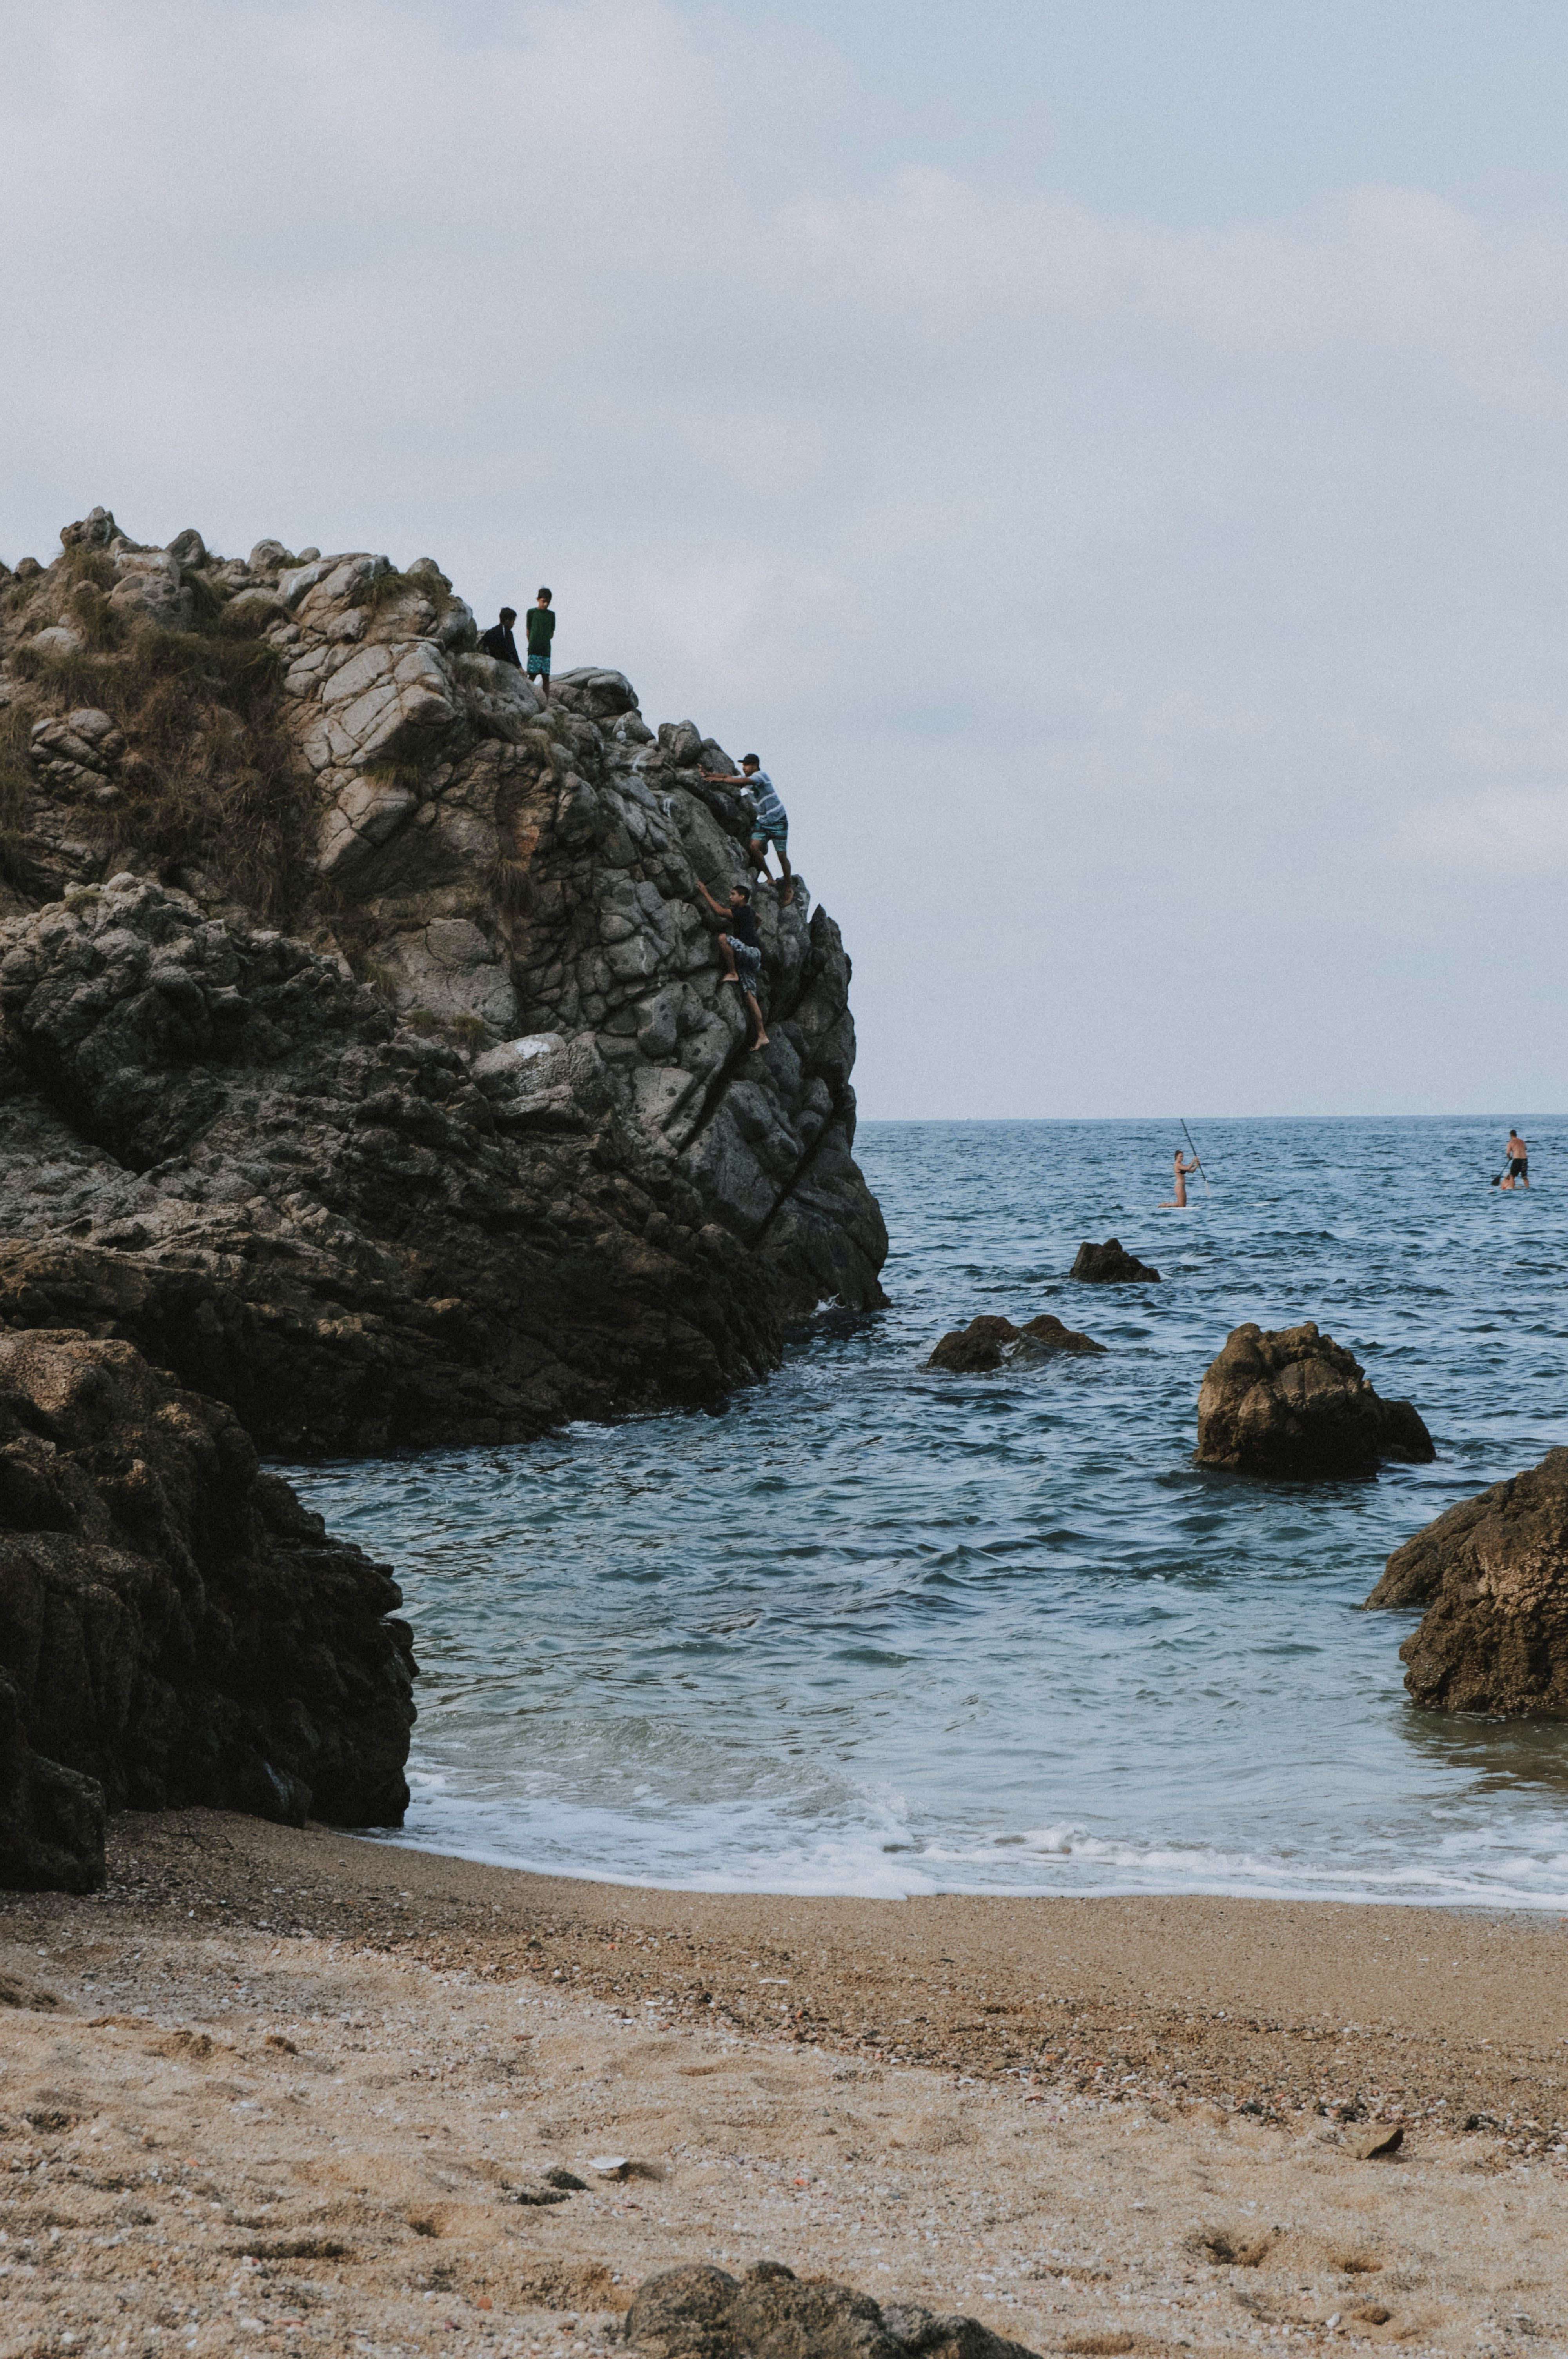 Photo of People on Top of a Rock Formation